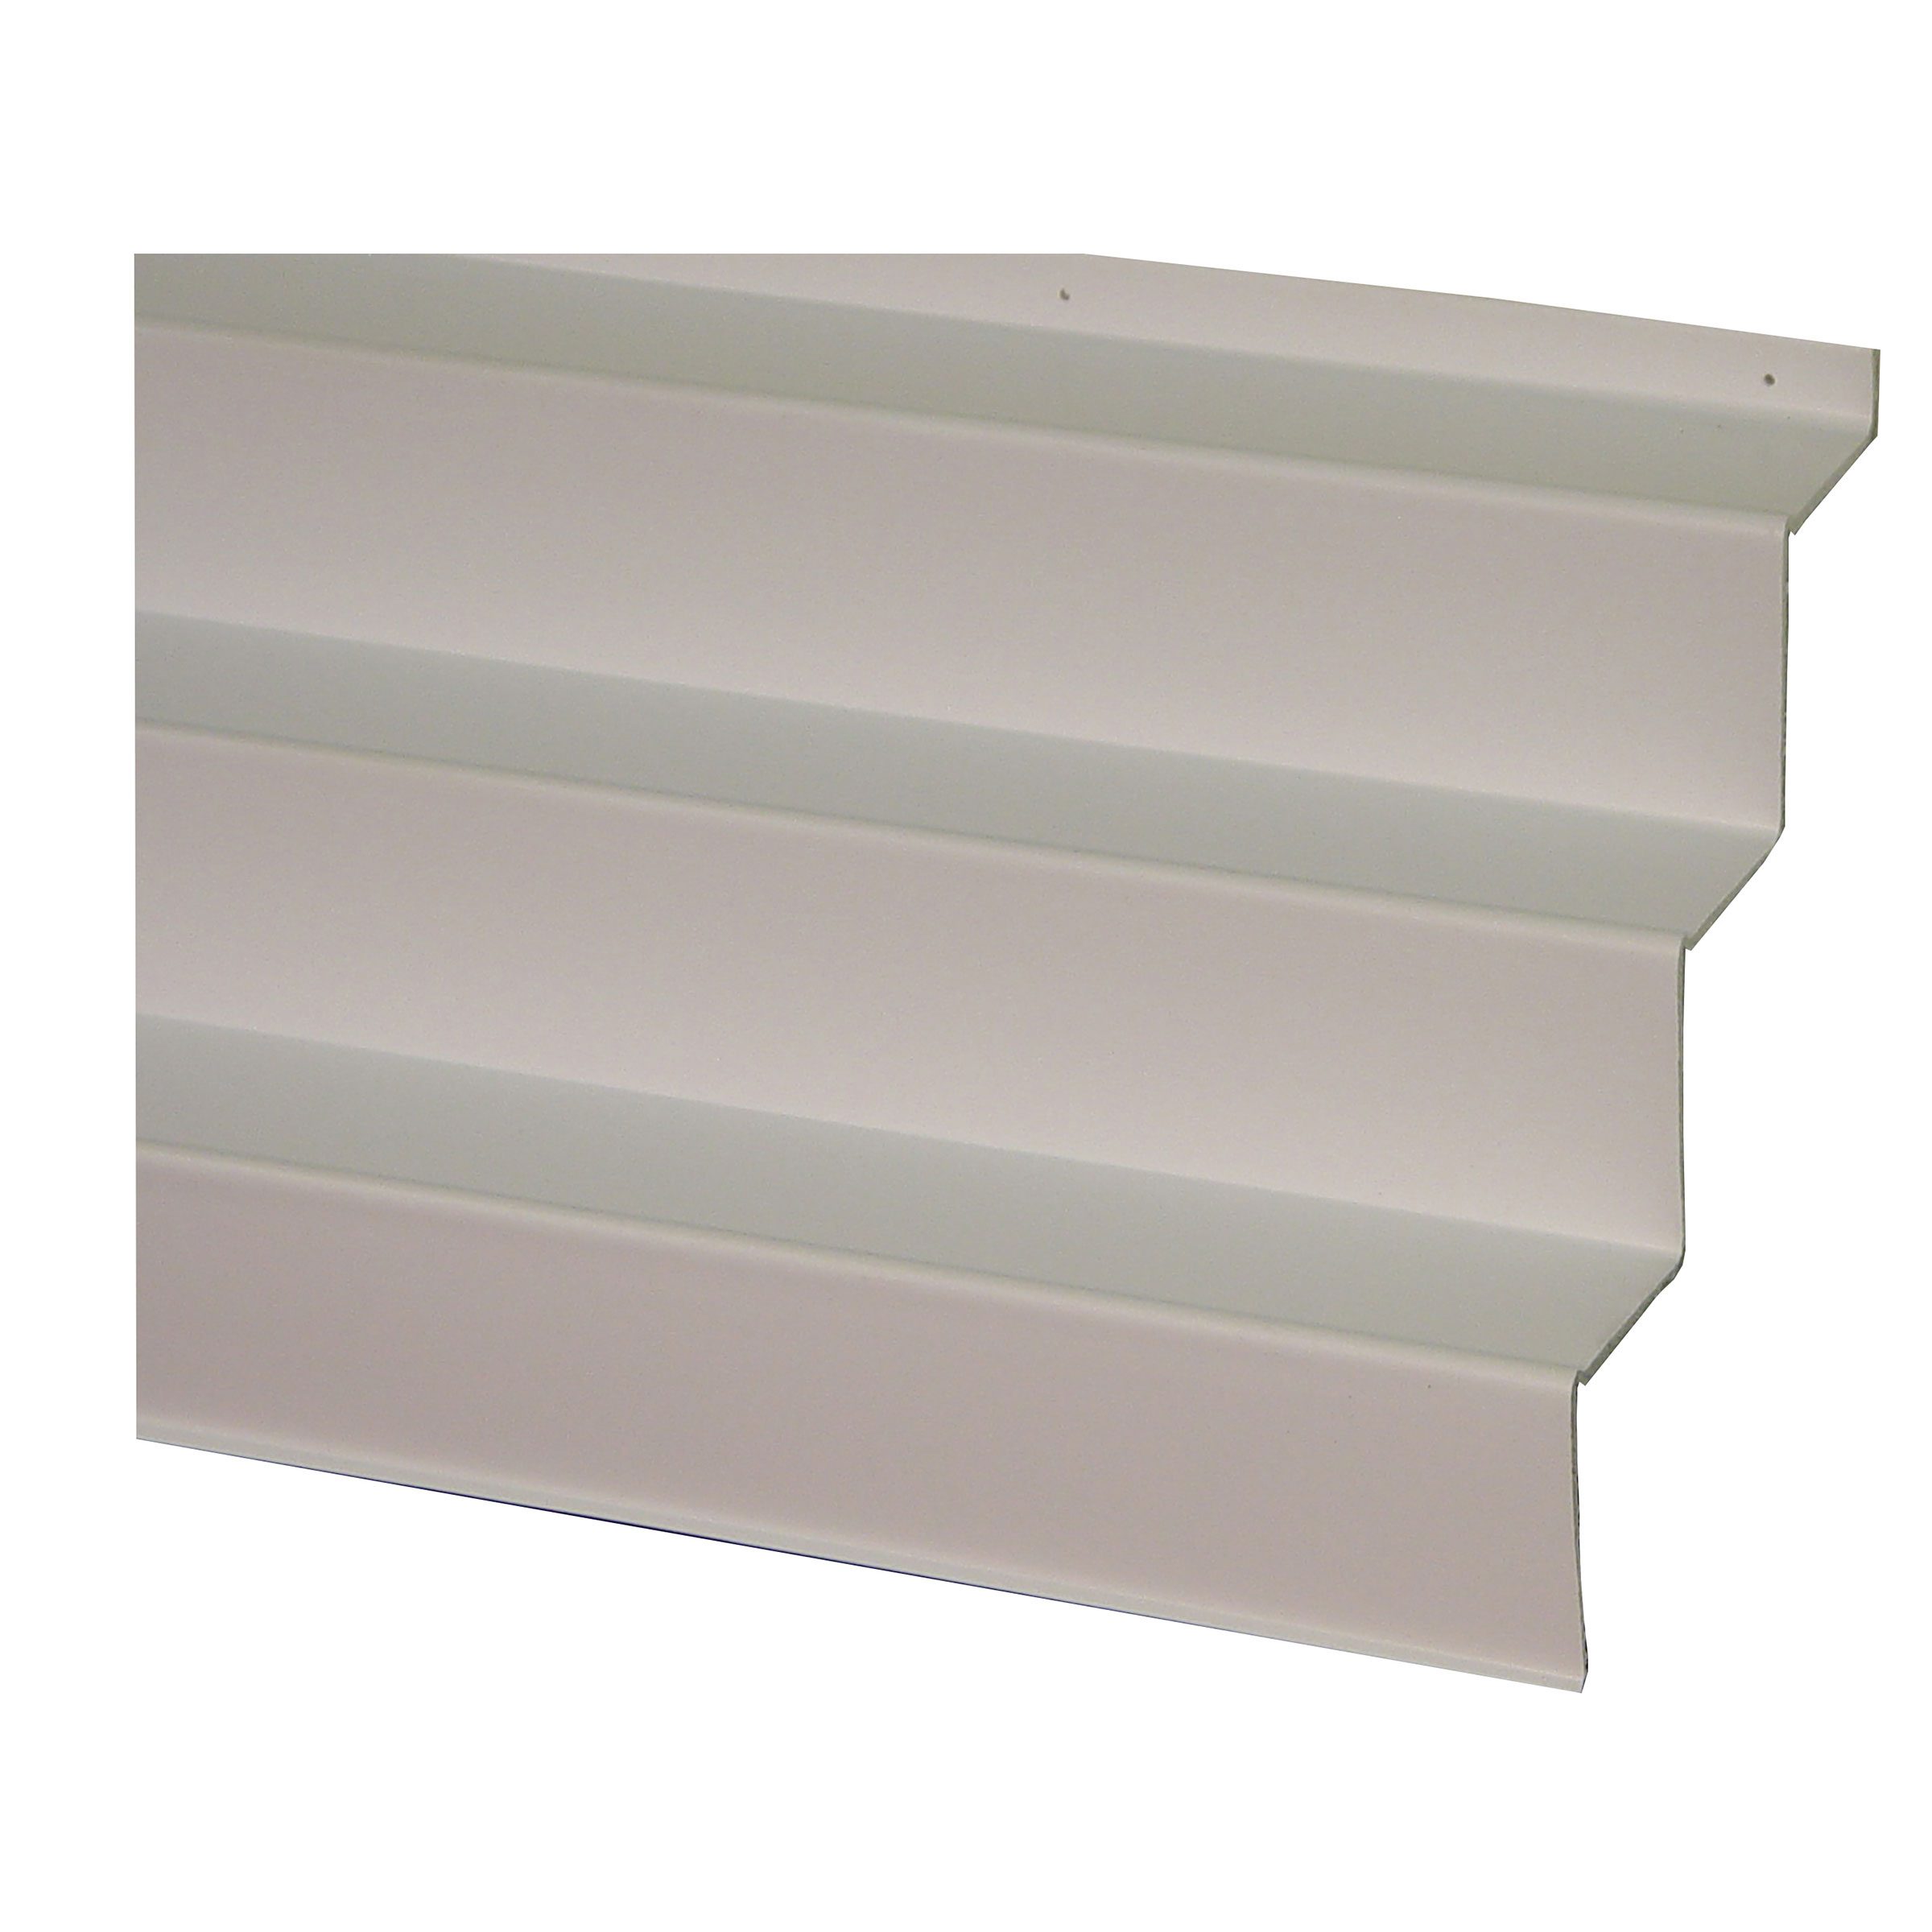 20 X 8 inch Trimmable 3-level Cabinet Organizer